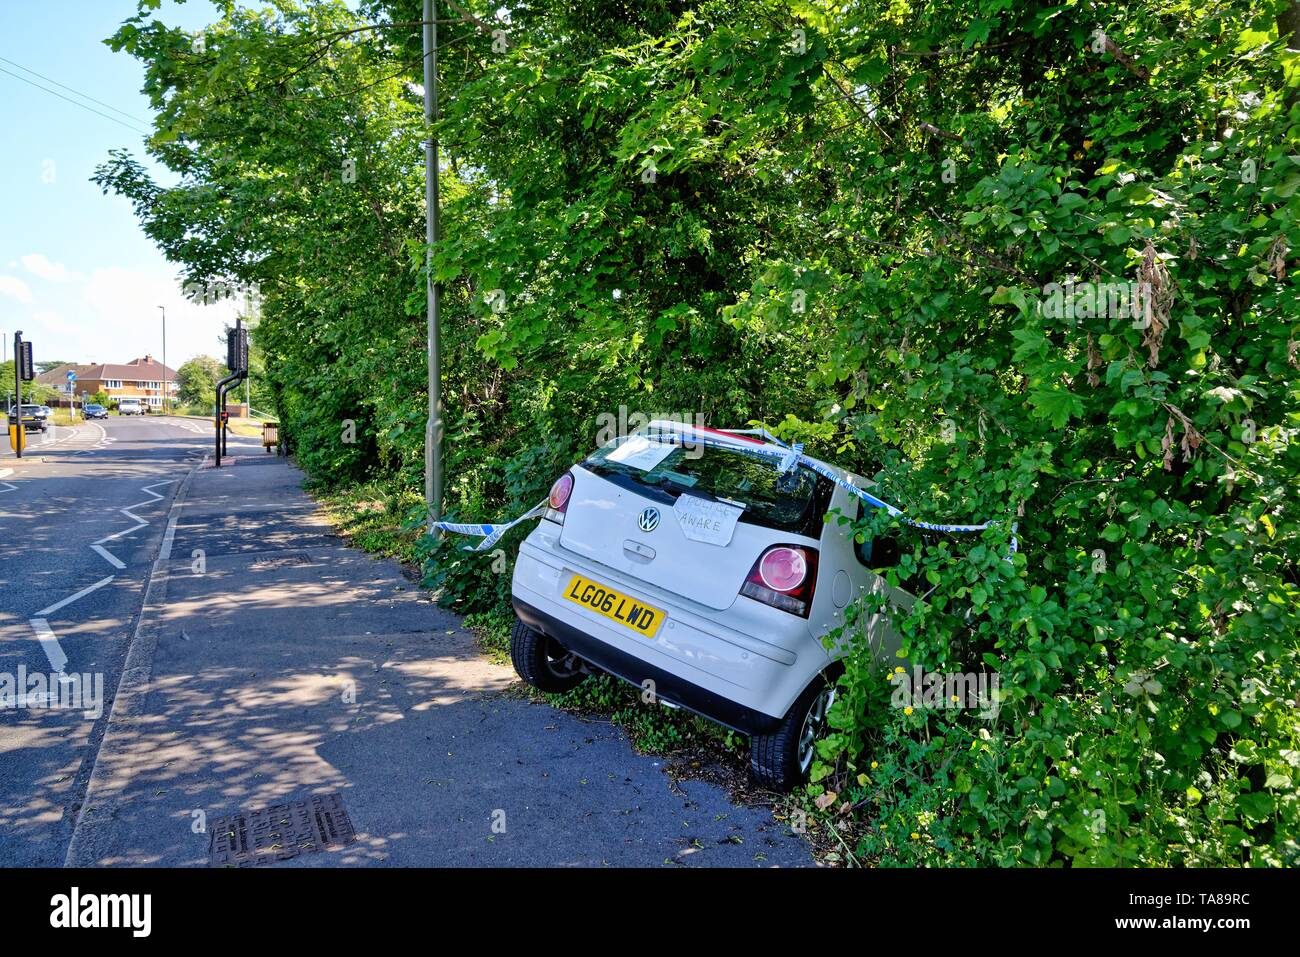 A white saloon car face down in a ditch after crashing off a main road, Shepperton Surrey England UK Stock Photo